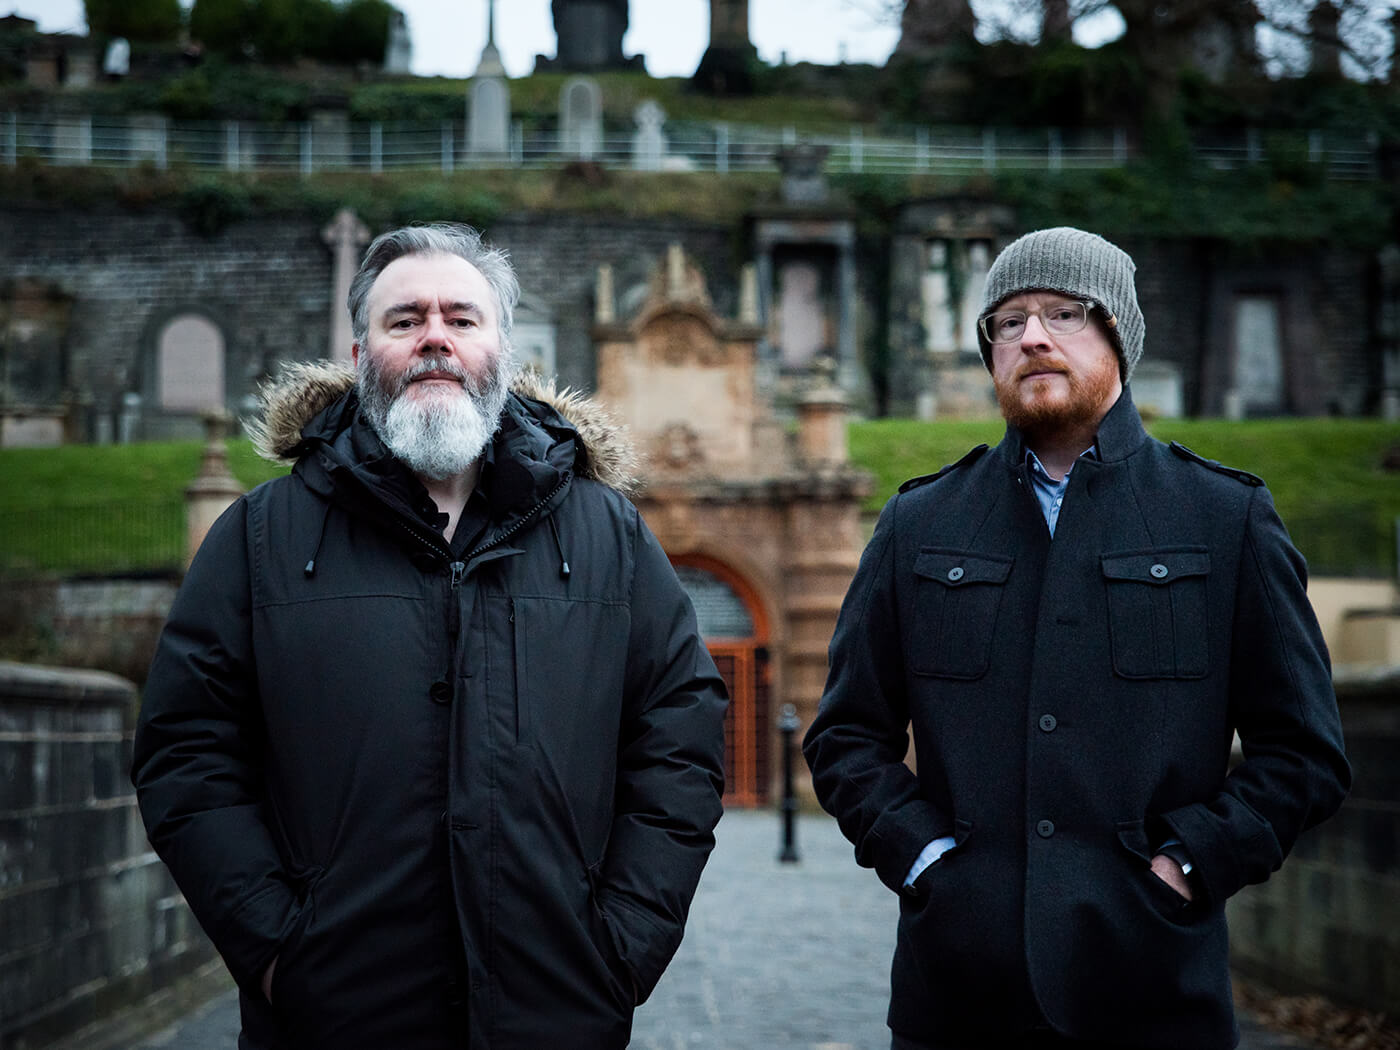 Arab Strap announce first album for 16 years, As Days Get Dark